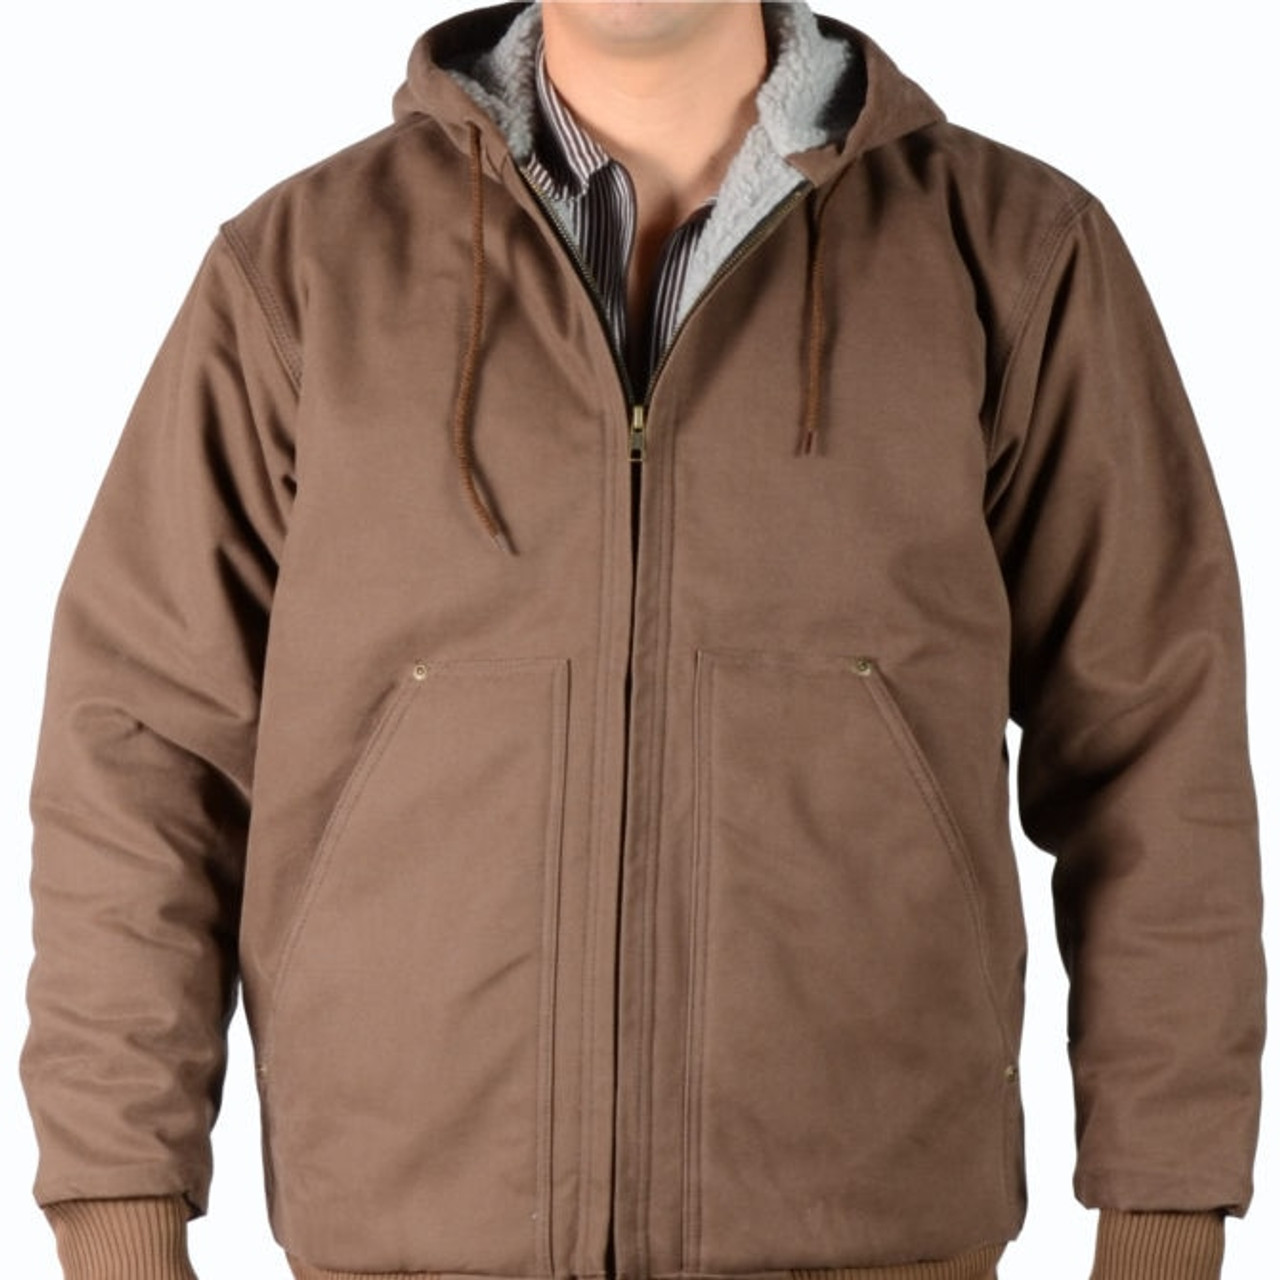 Ben Davis® Hooded Fleece/Sherpa Lined Jacket